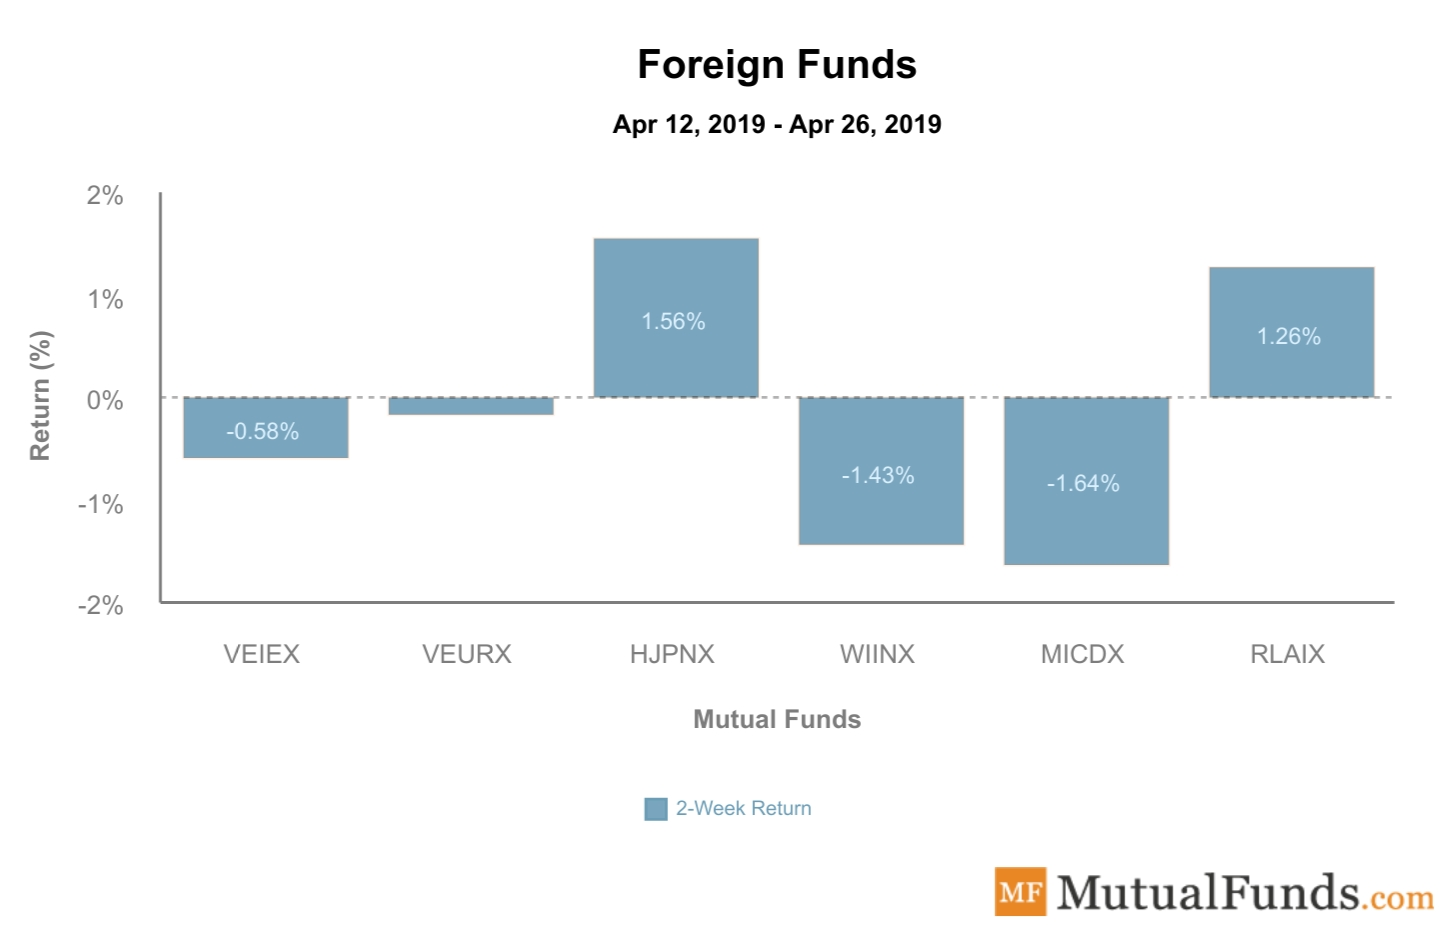 Foreign Funds Performance April 30